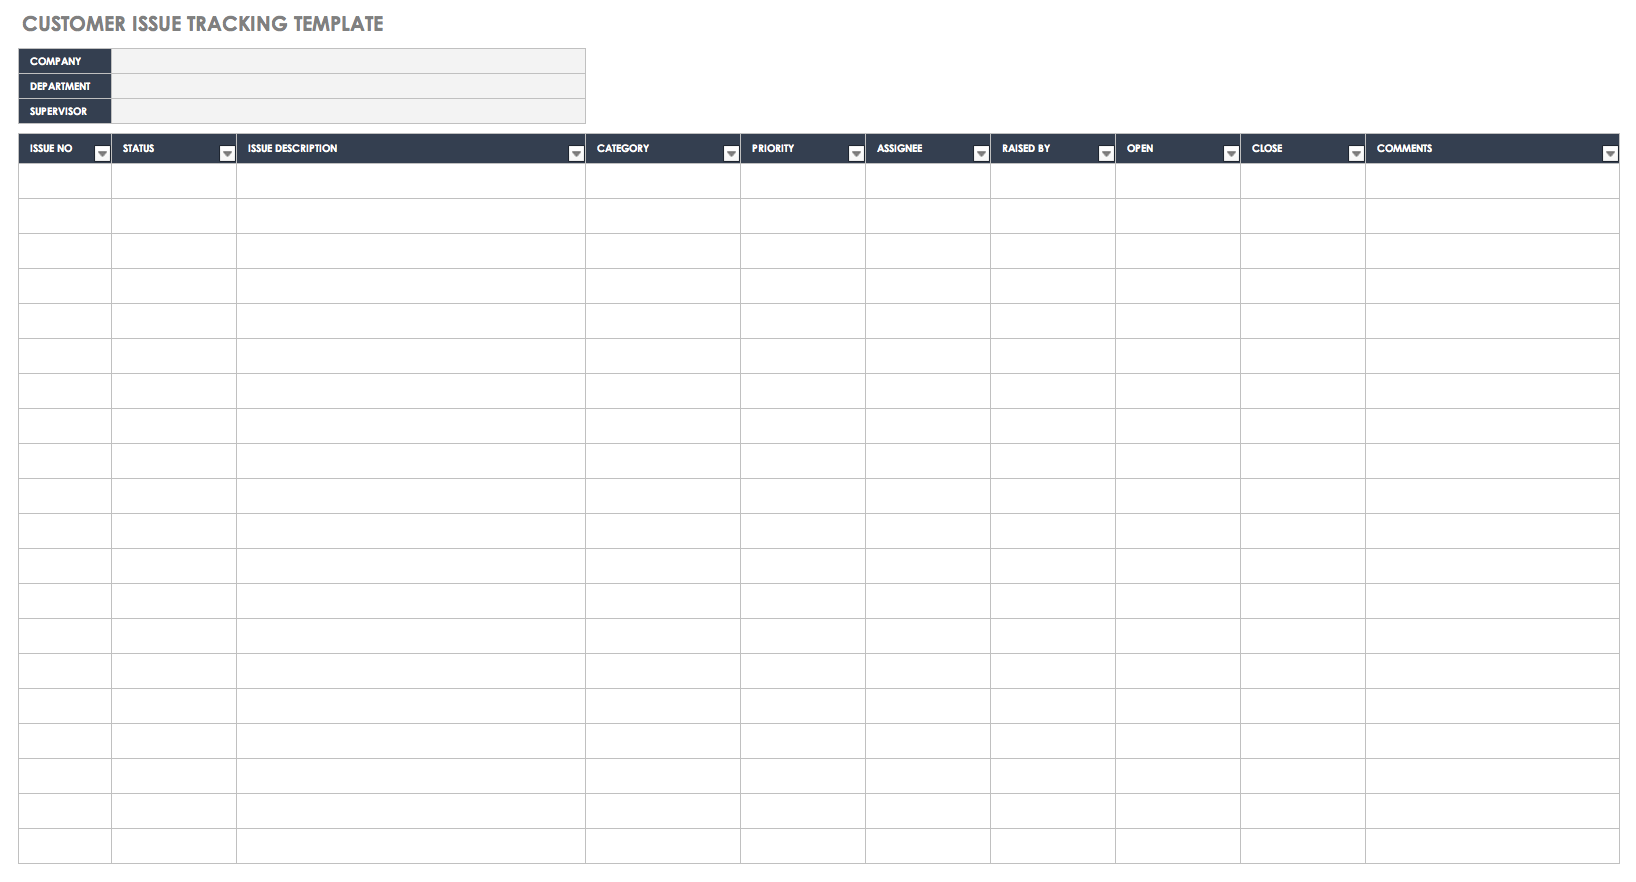 Customer Issue Tracking Template